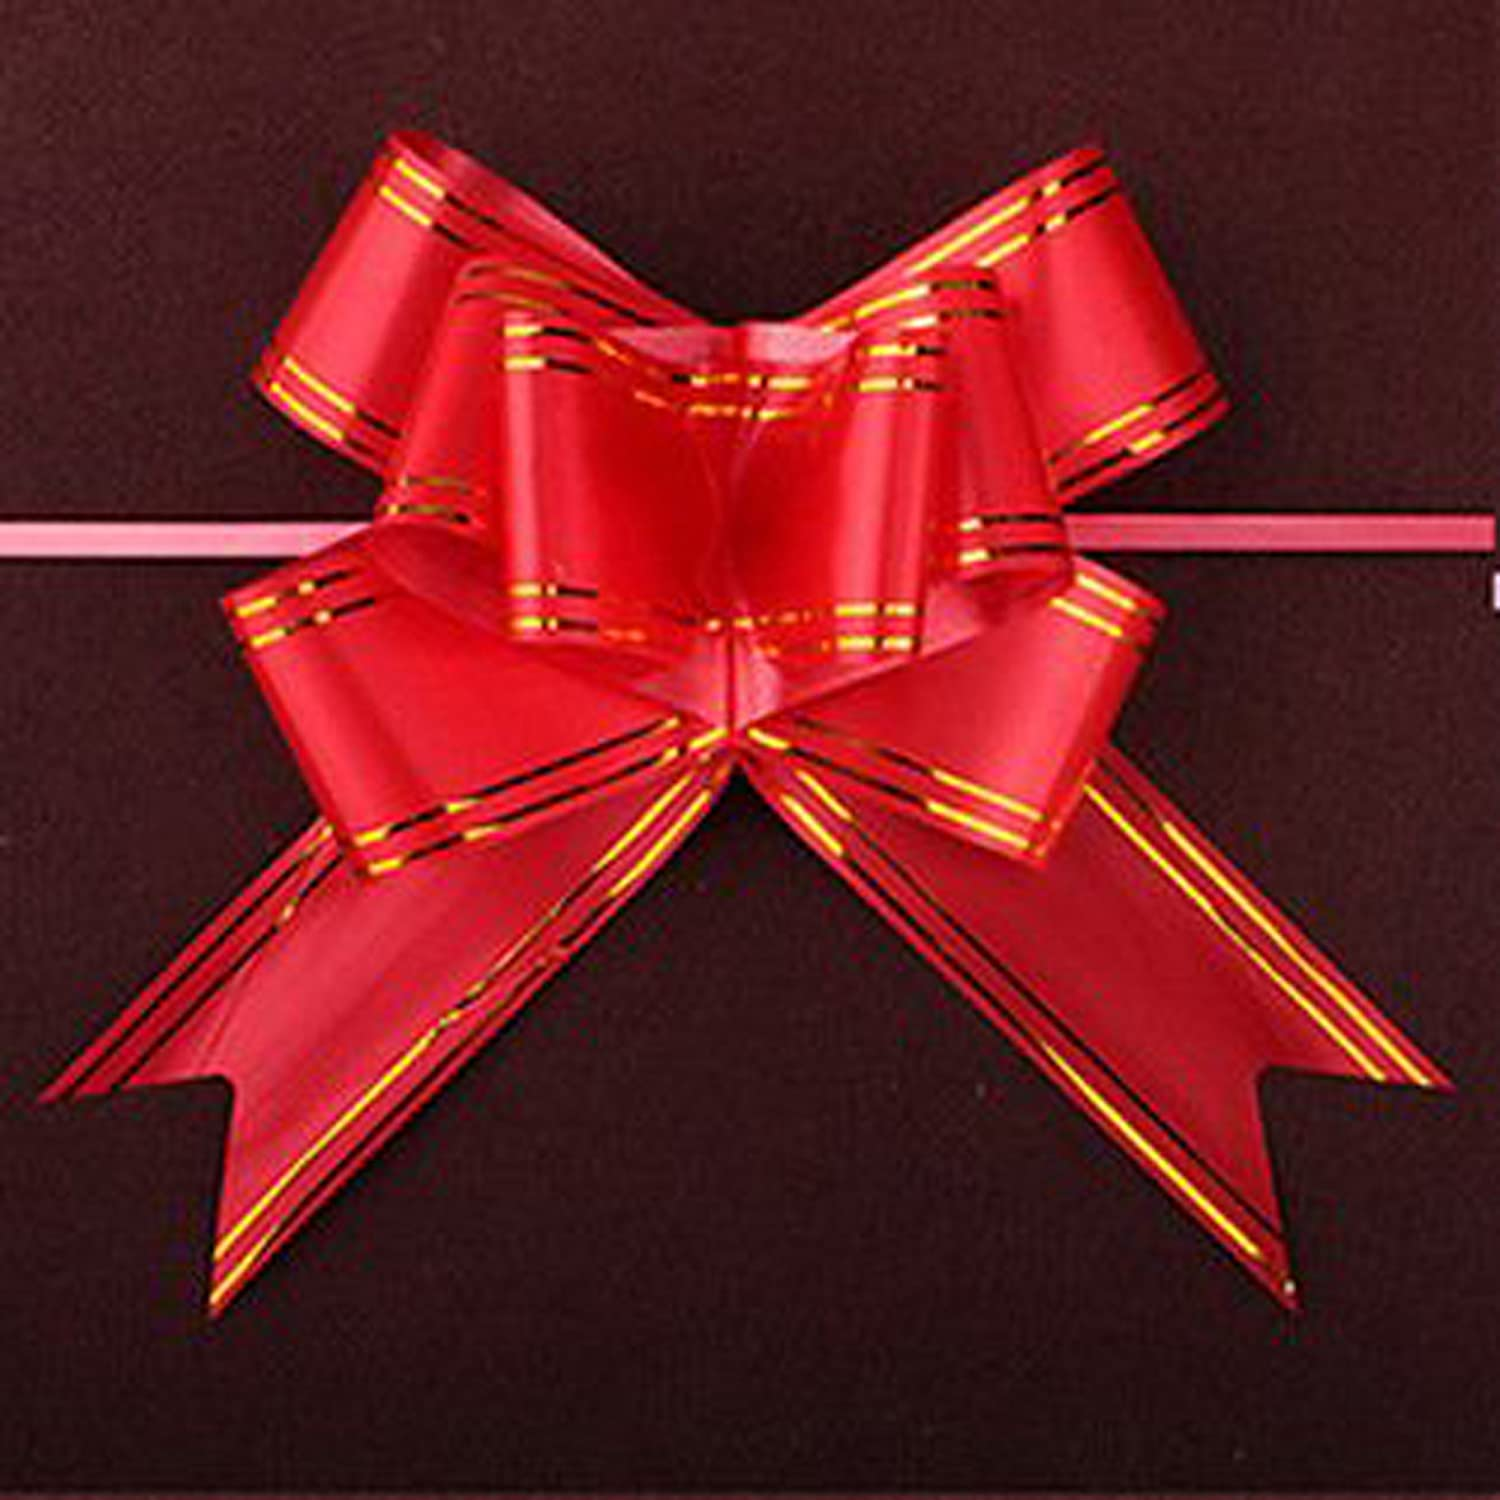 KRAFTZ/® 18mm White Butterfly pull bows with gold line Colorful and Beautiful Pull String Bow for Wedding Birthday Christmas Party Decoration Pack of 10